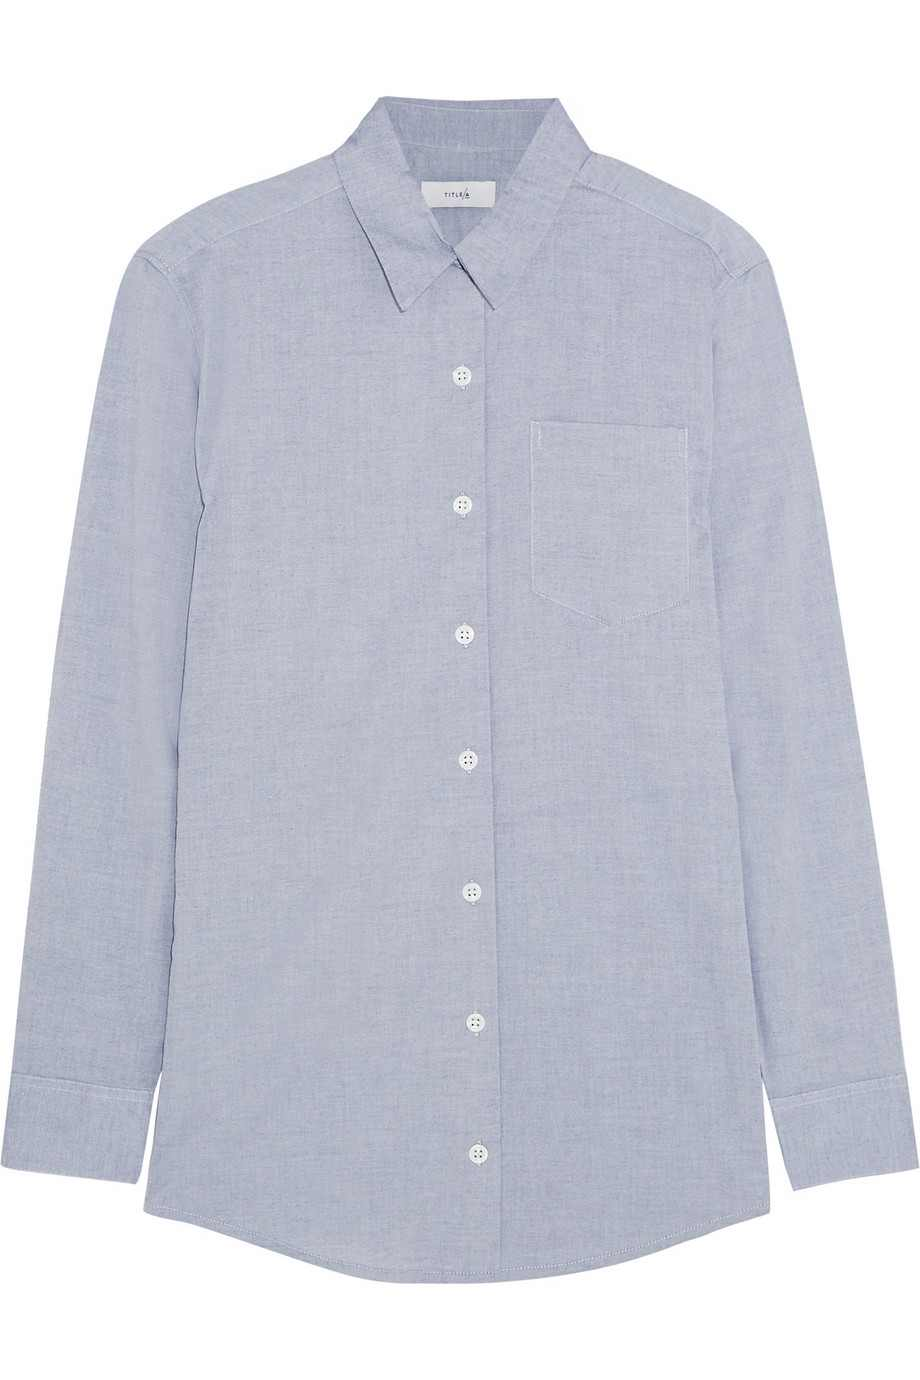 Title A - Chemise (205 €)